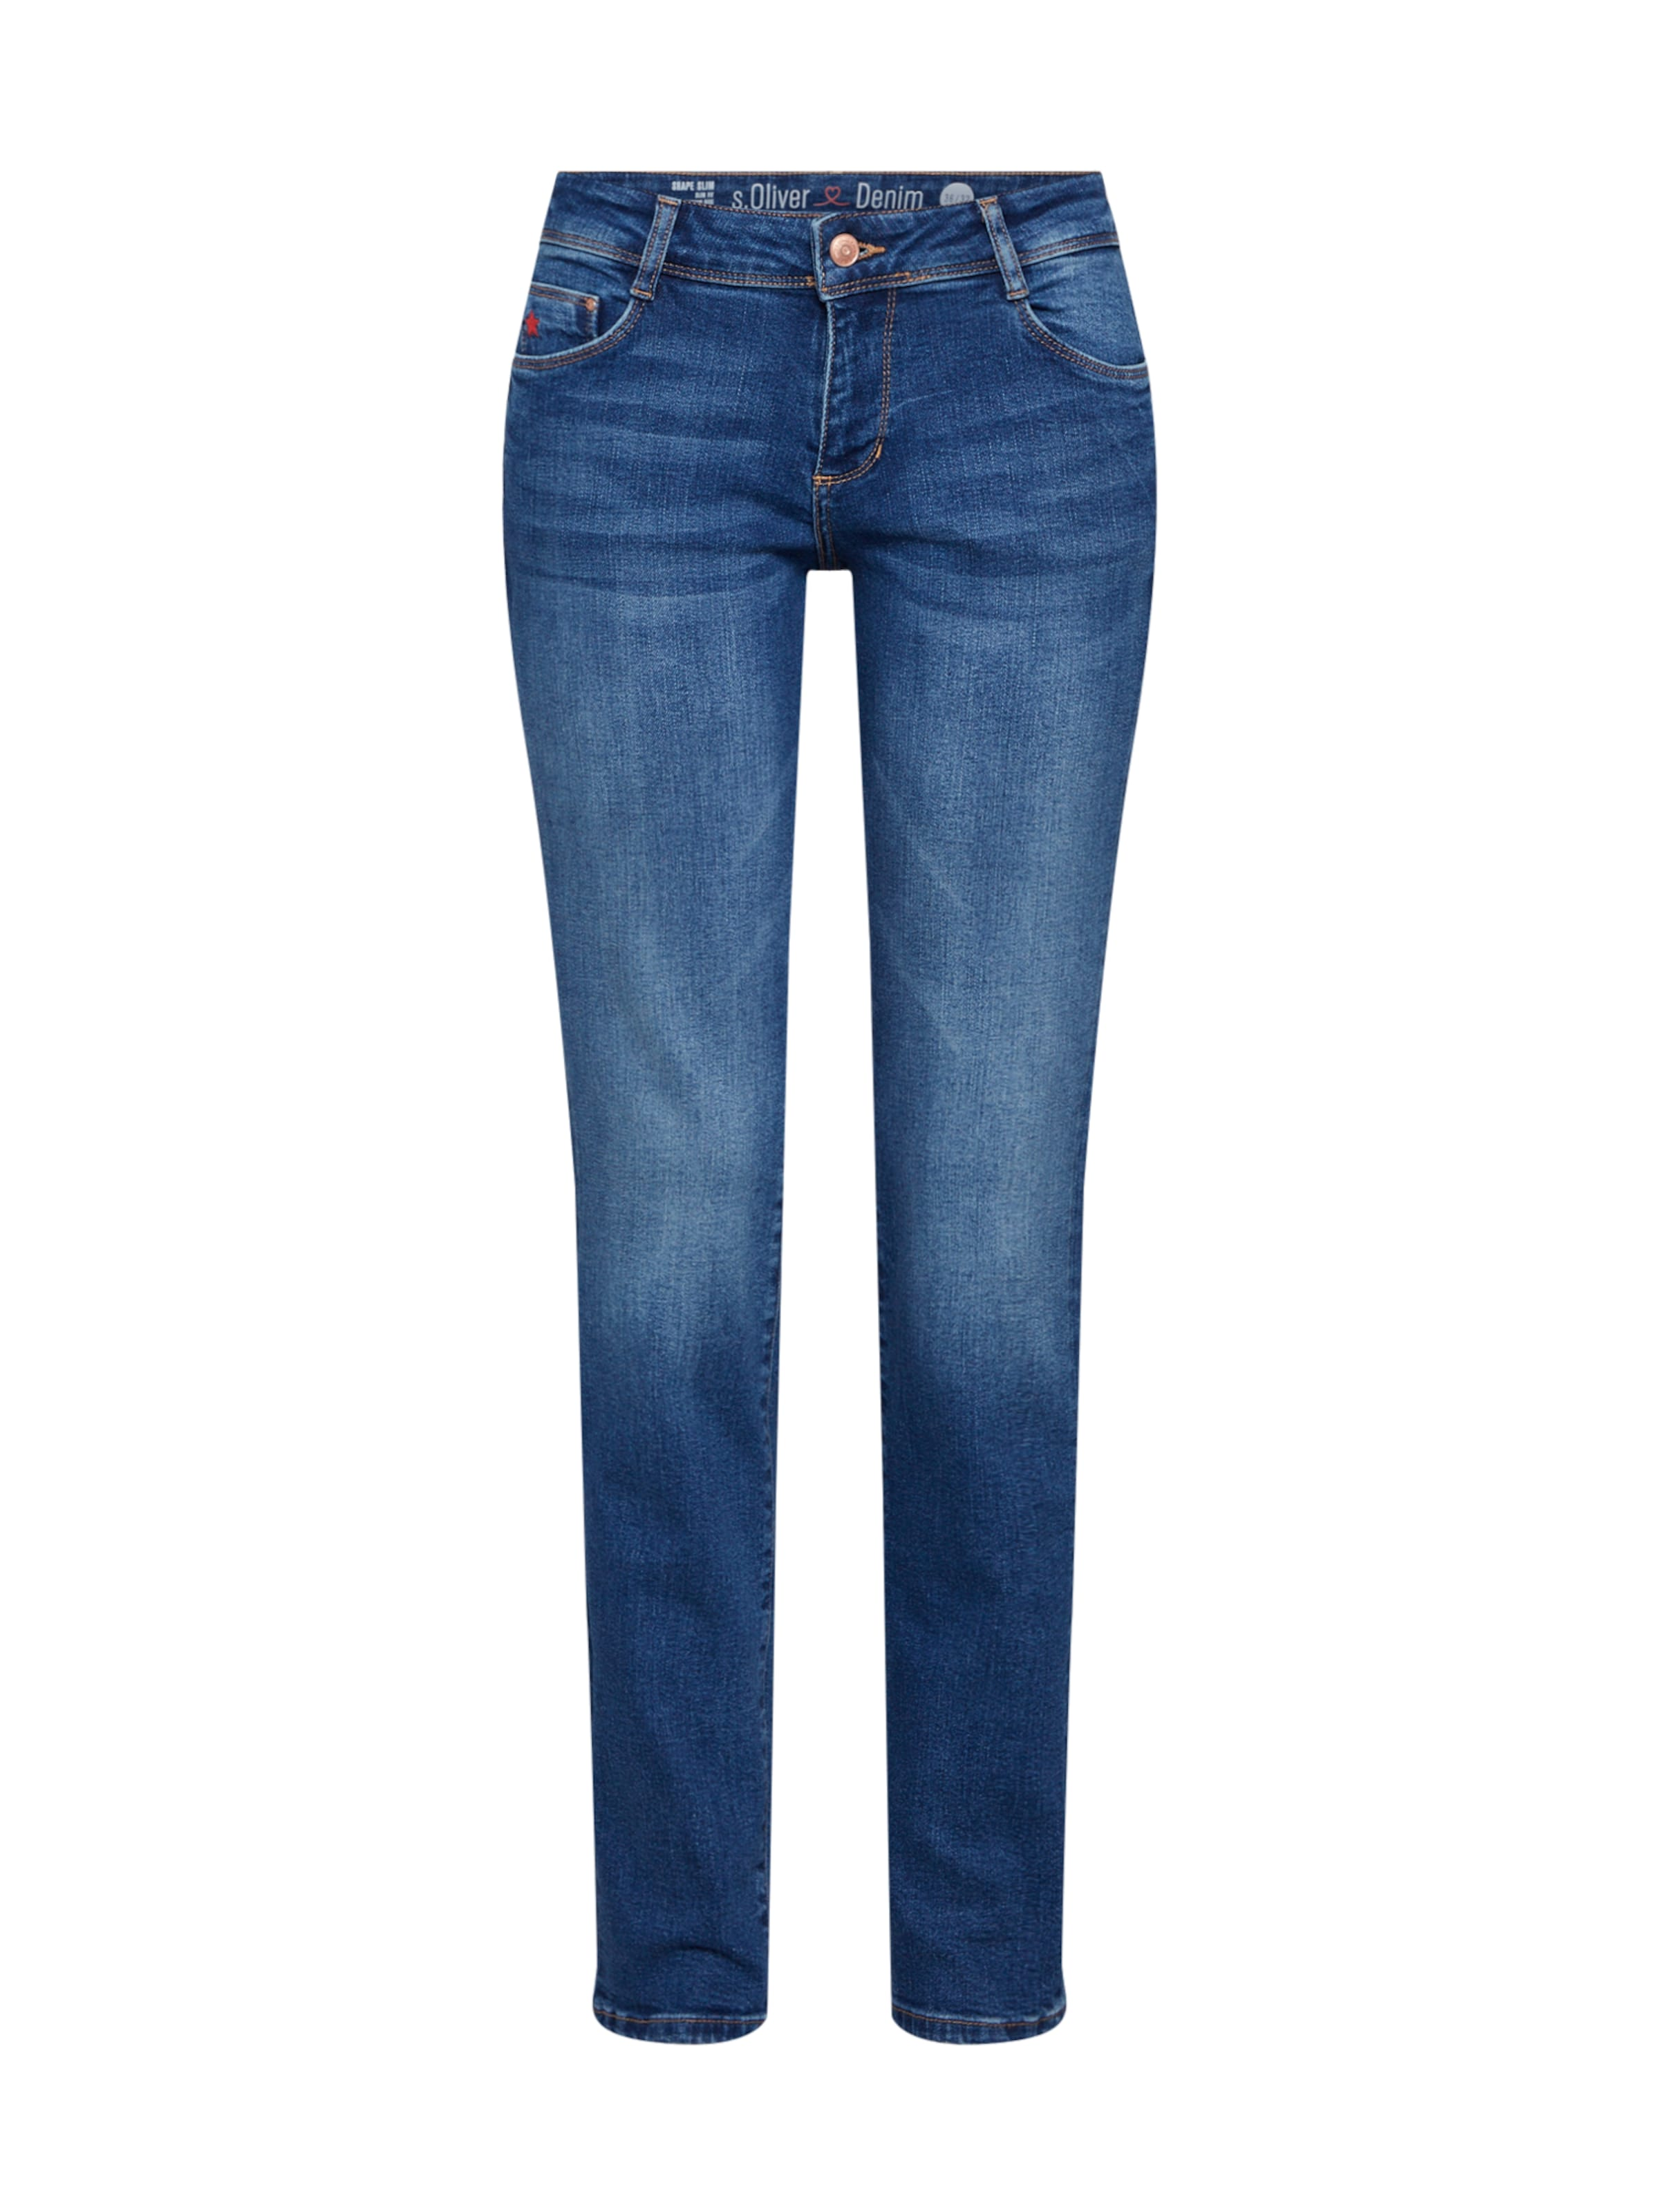 Red Jeans Slim' 'shape oliver Label S Blue Denim In K1TFc3ulJ